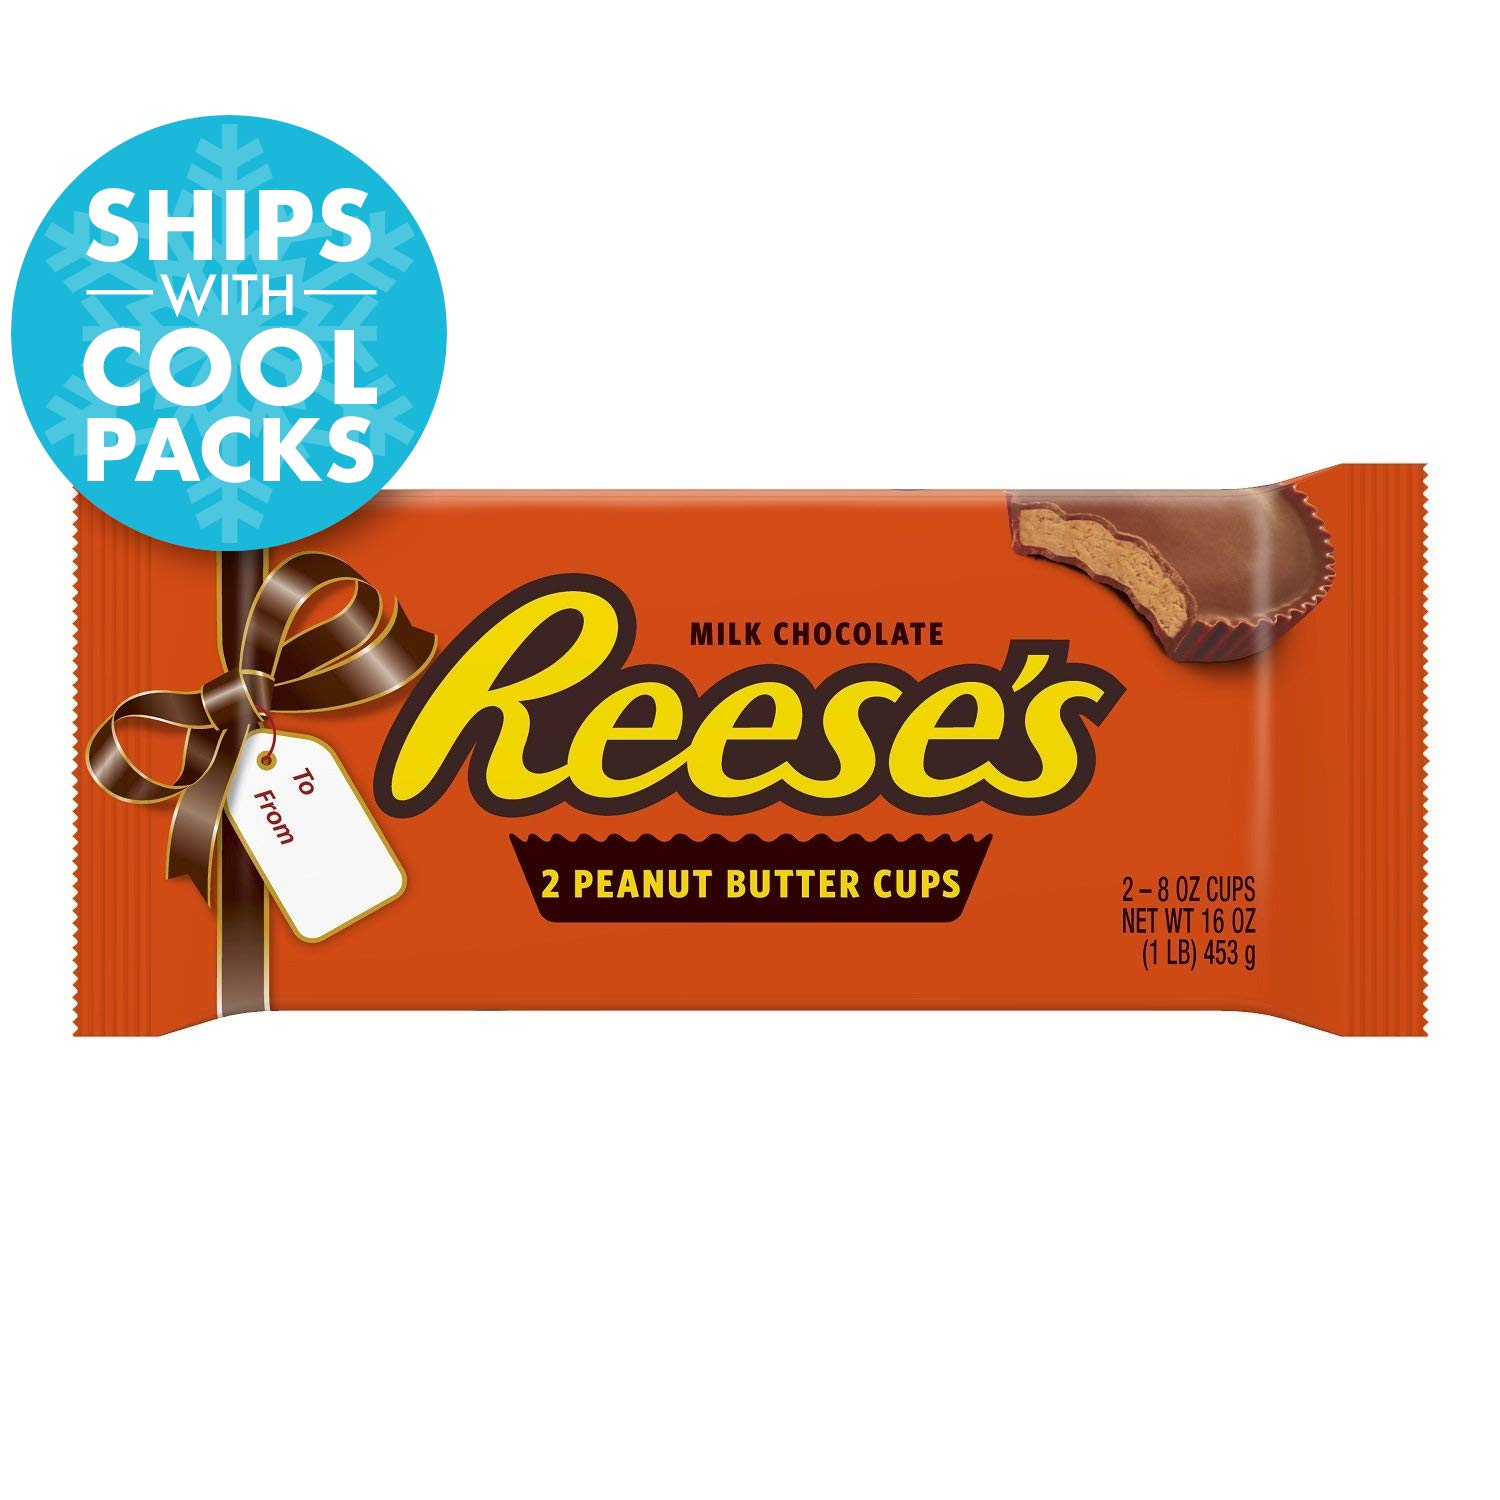 c1fbe8f9885 Amazon.com : REESE'S 1 Pound, Chocolate Candy, Peanut Butter Cups, 1 LB Bar  : Candy And Chocolate Bars : Grocery & Gourmet Food